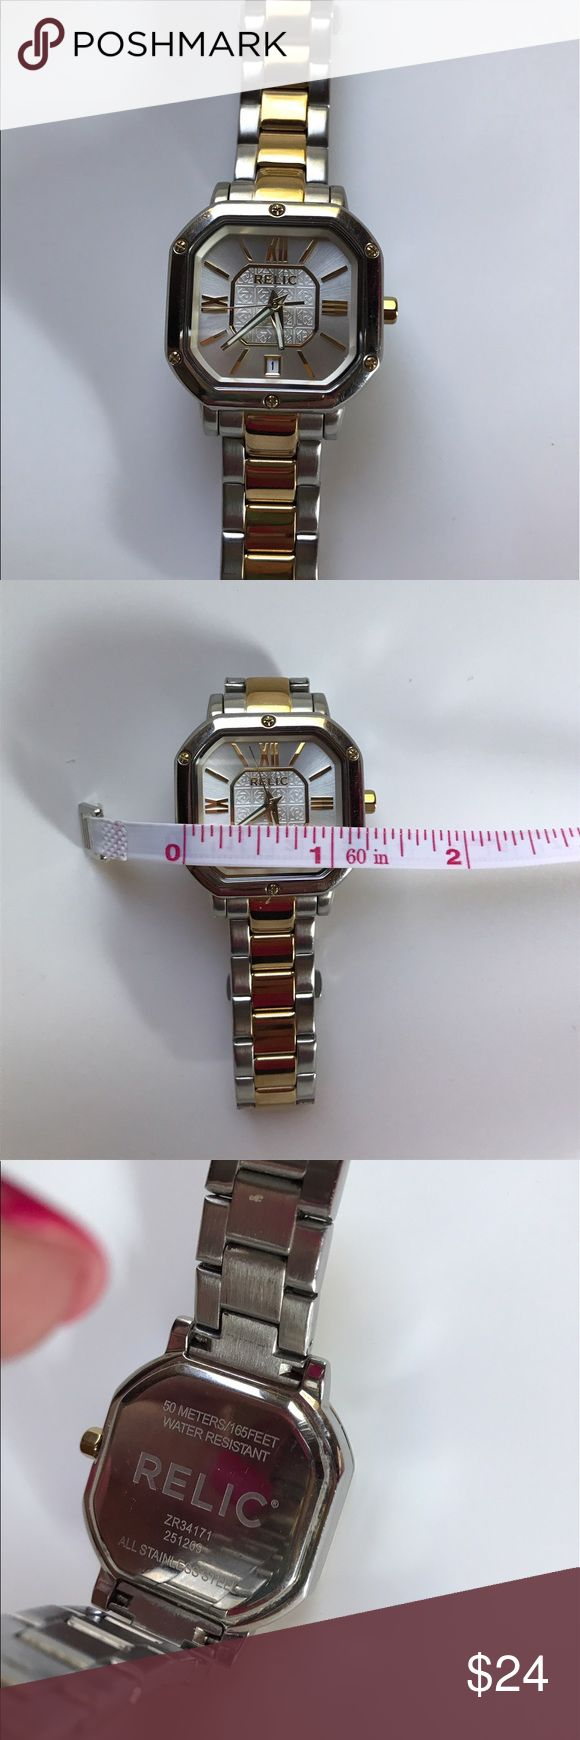 Relic watch Ladies large face Relic watch in gold and silver tones with date feature. Water resistant to 50m. Stainless steel back and clasp. Worn many times. No scratches or signs of wear. Brand new battery! Relic Jewelry